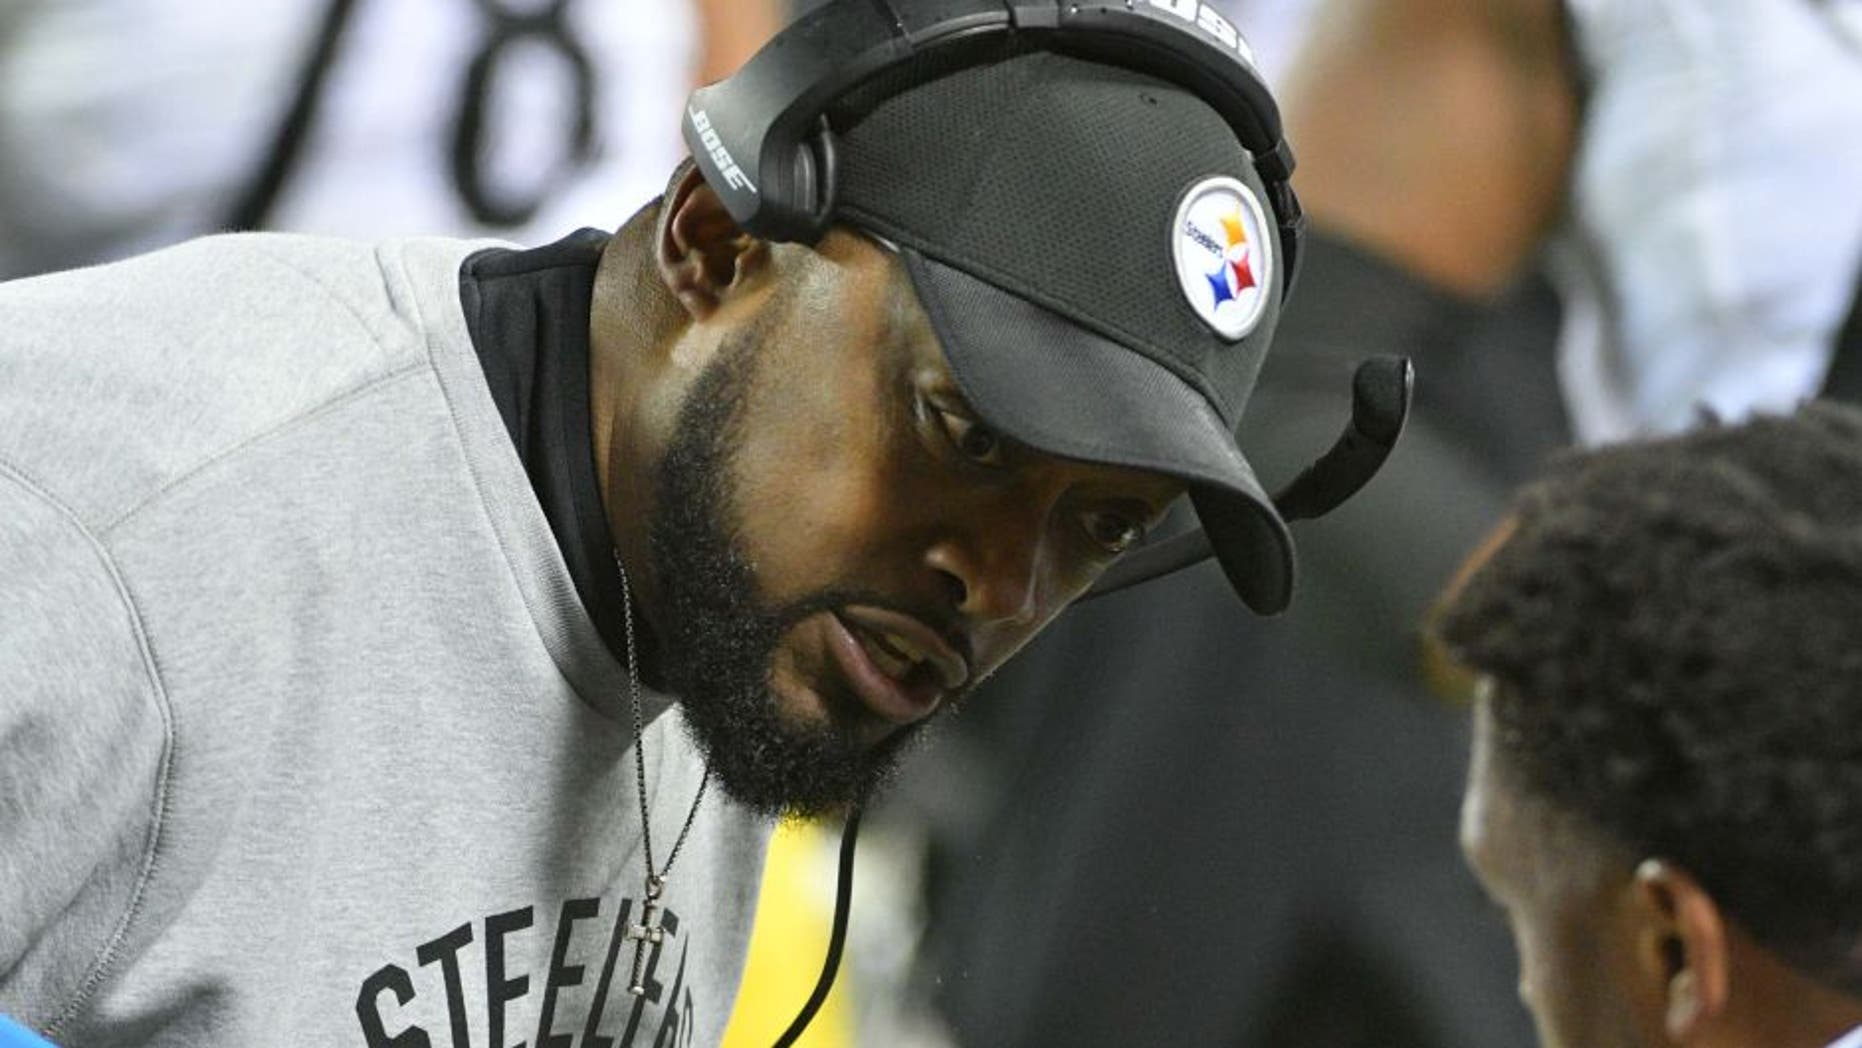 Jan 15, 2017; Kansas City, MO, USA; Pittsburgh Steelers head coach Mike Tomlin speaks to a player during the second quarter against the Kansas City Chiefs in the AFC Divisional playoff game at Arrowhead Stadium. Mandatory Credit: Denny Medley-USA TODAY Sports